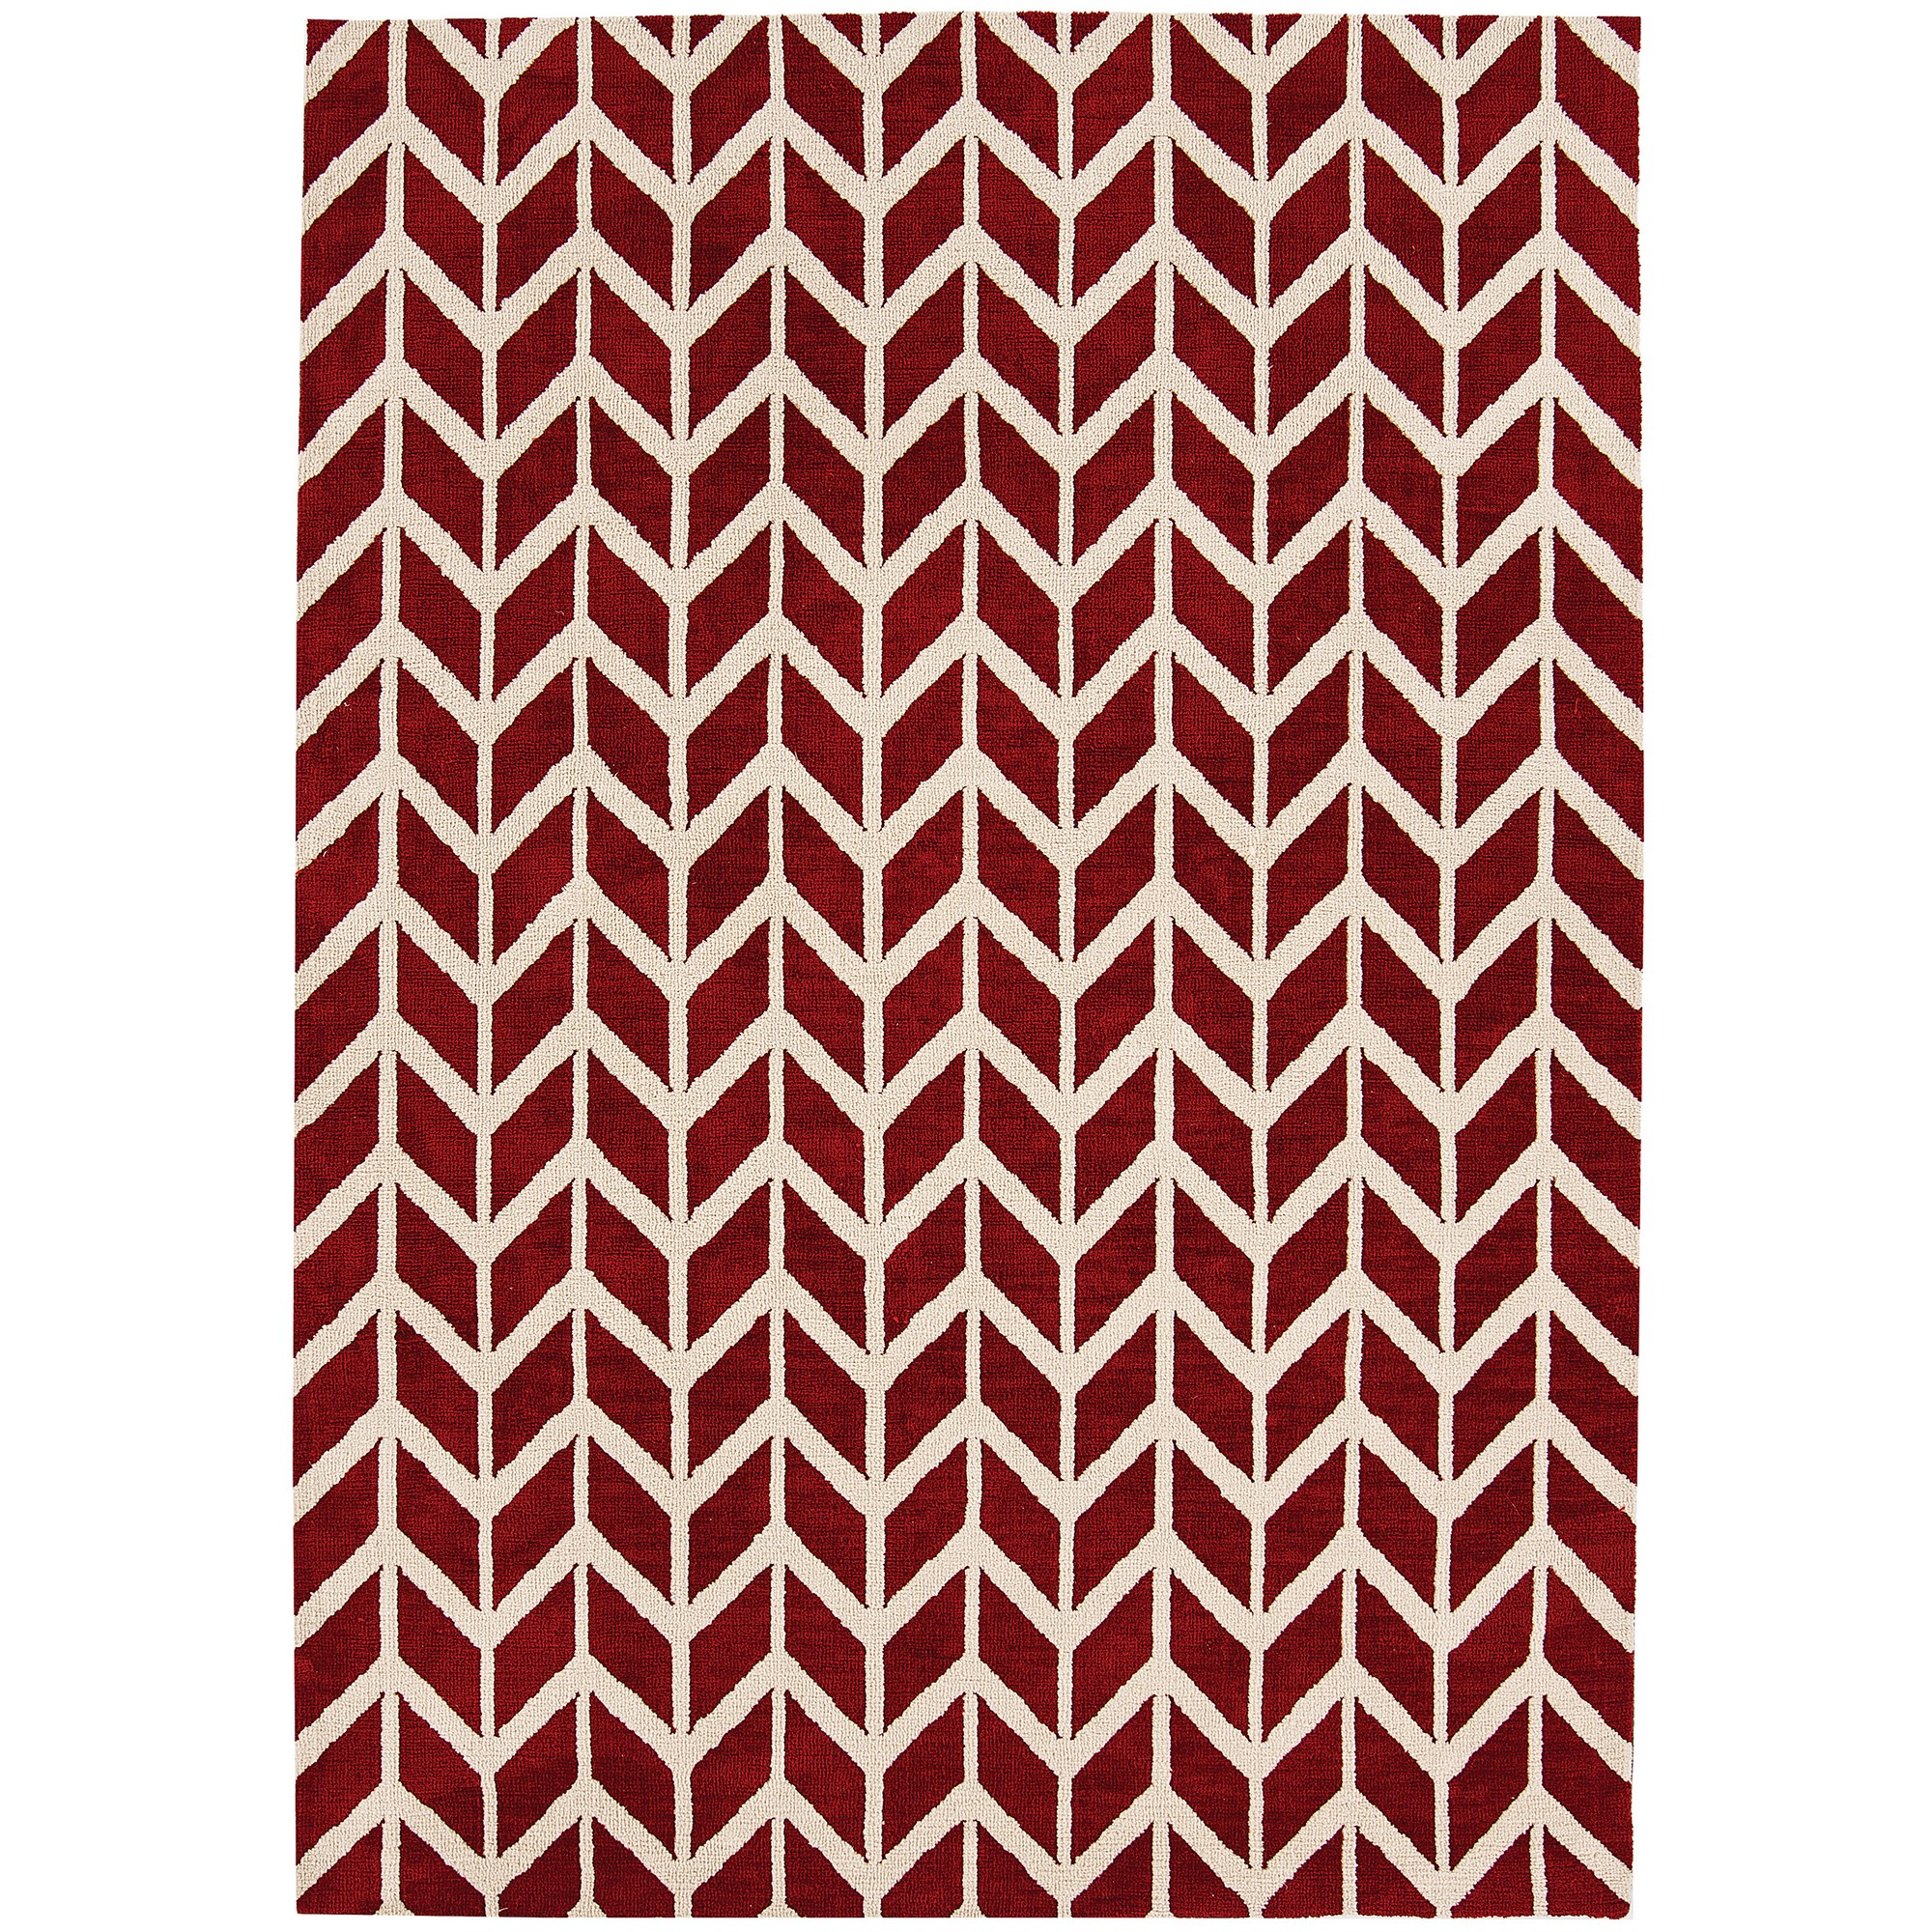 arlo chevron rugs ar in red  free uk delivery  the rug seller - arlo chevron rugs ar in red